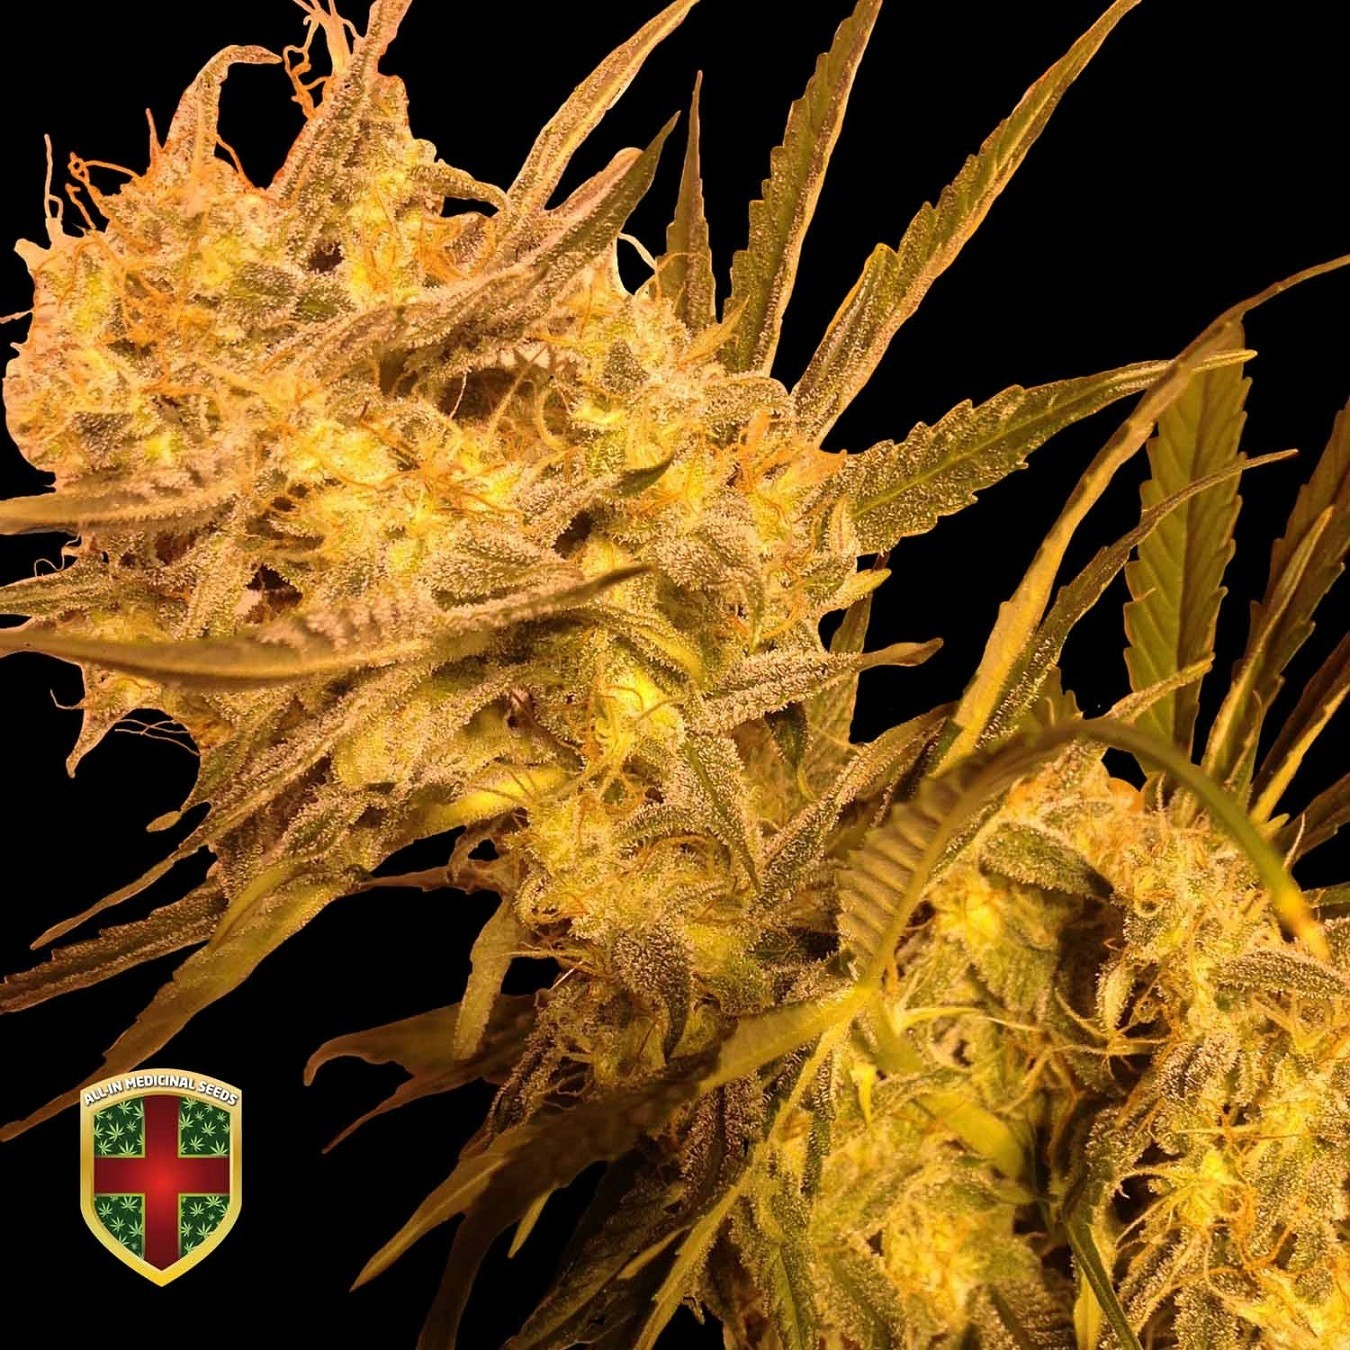 BENEDICTA - 1 UNDS. FEM - ALL IN MEDICINAL - ALL-IN MEDICINAL SEEDS